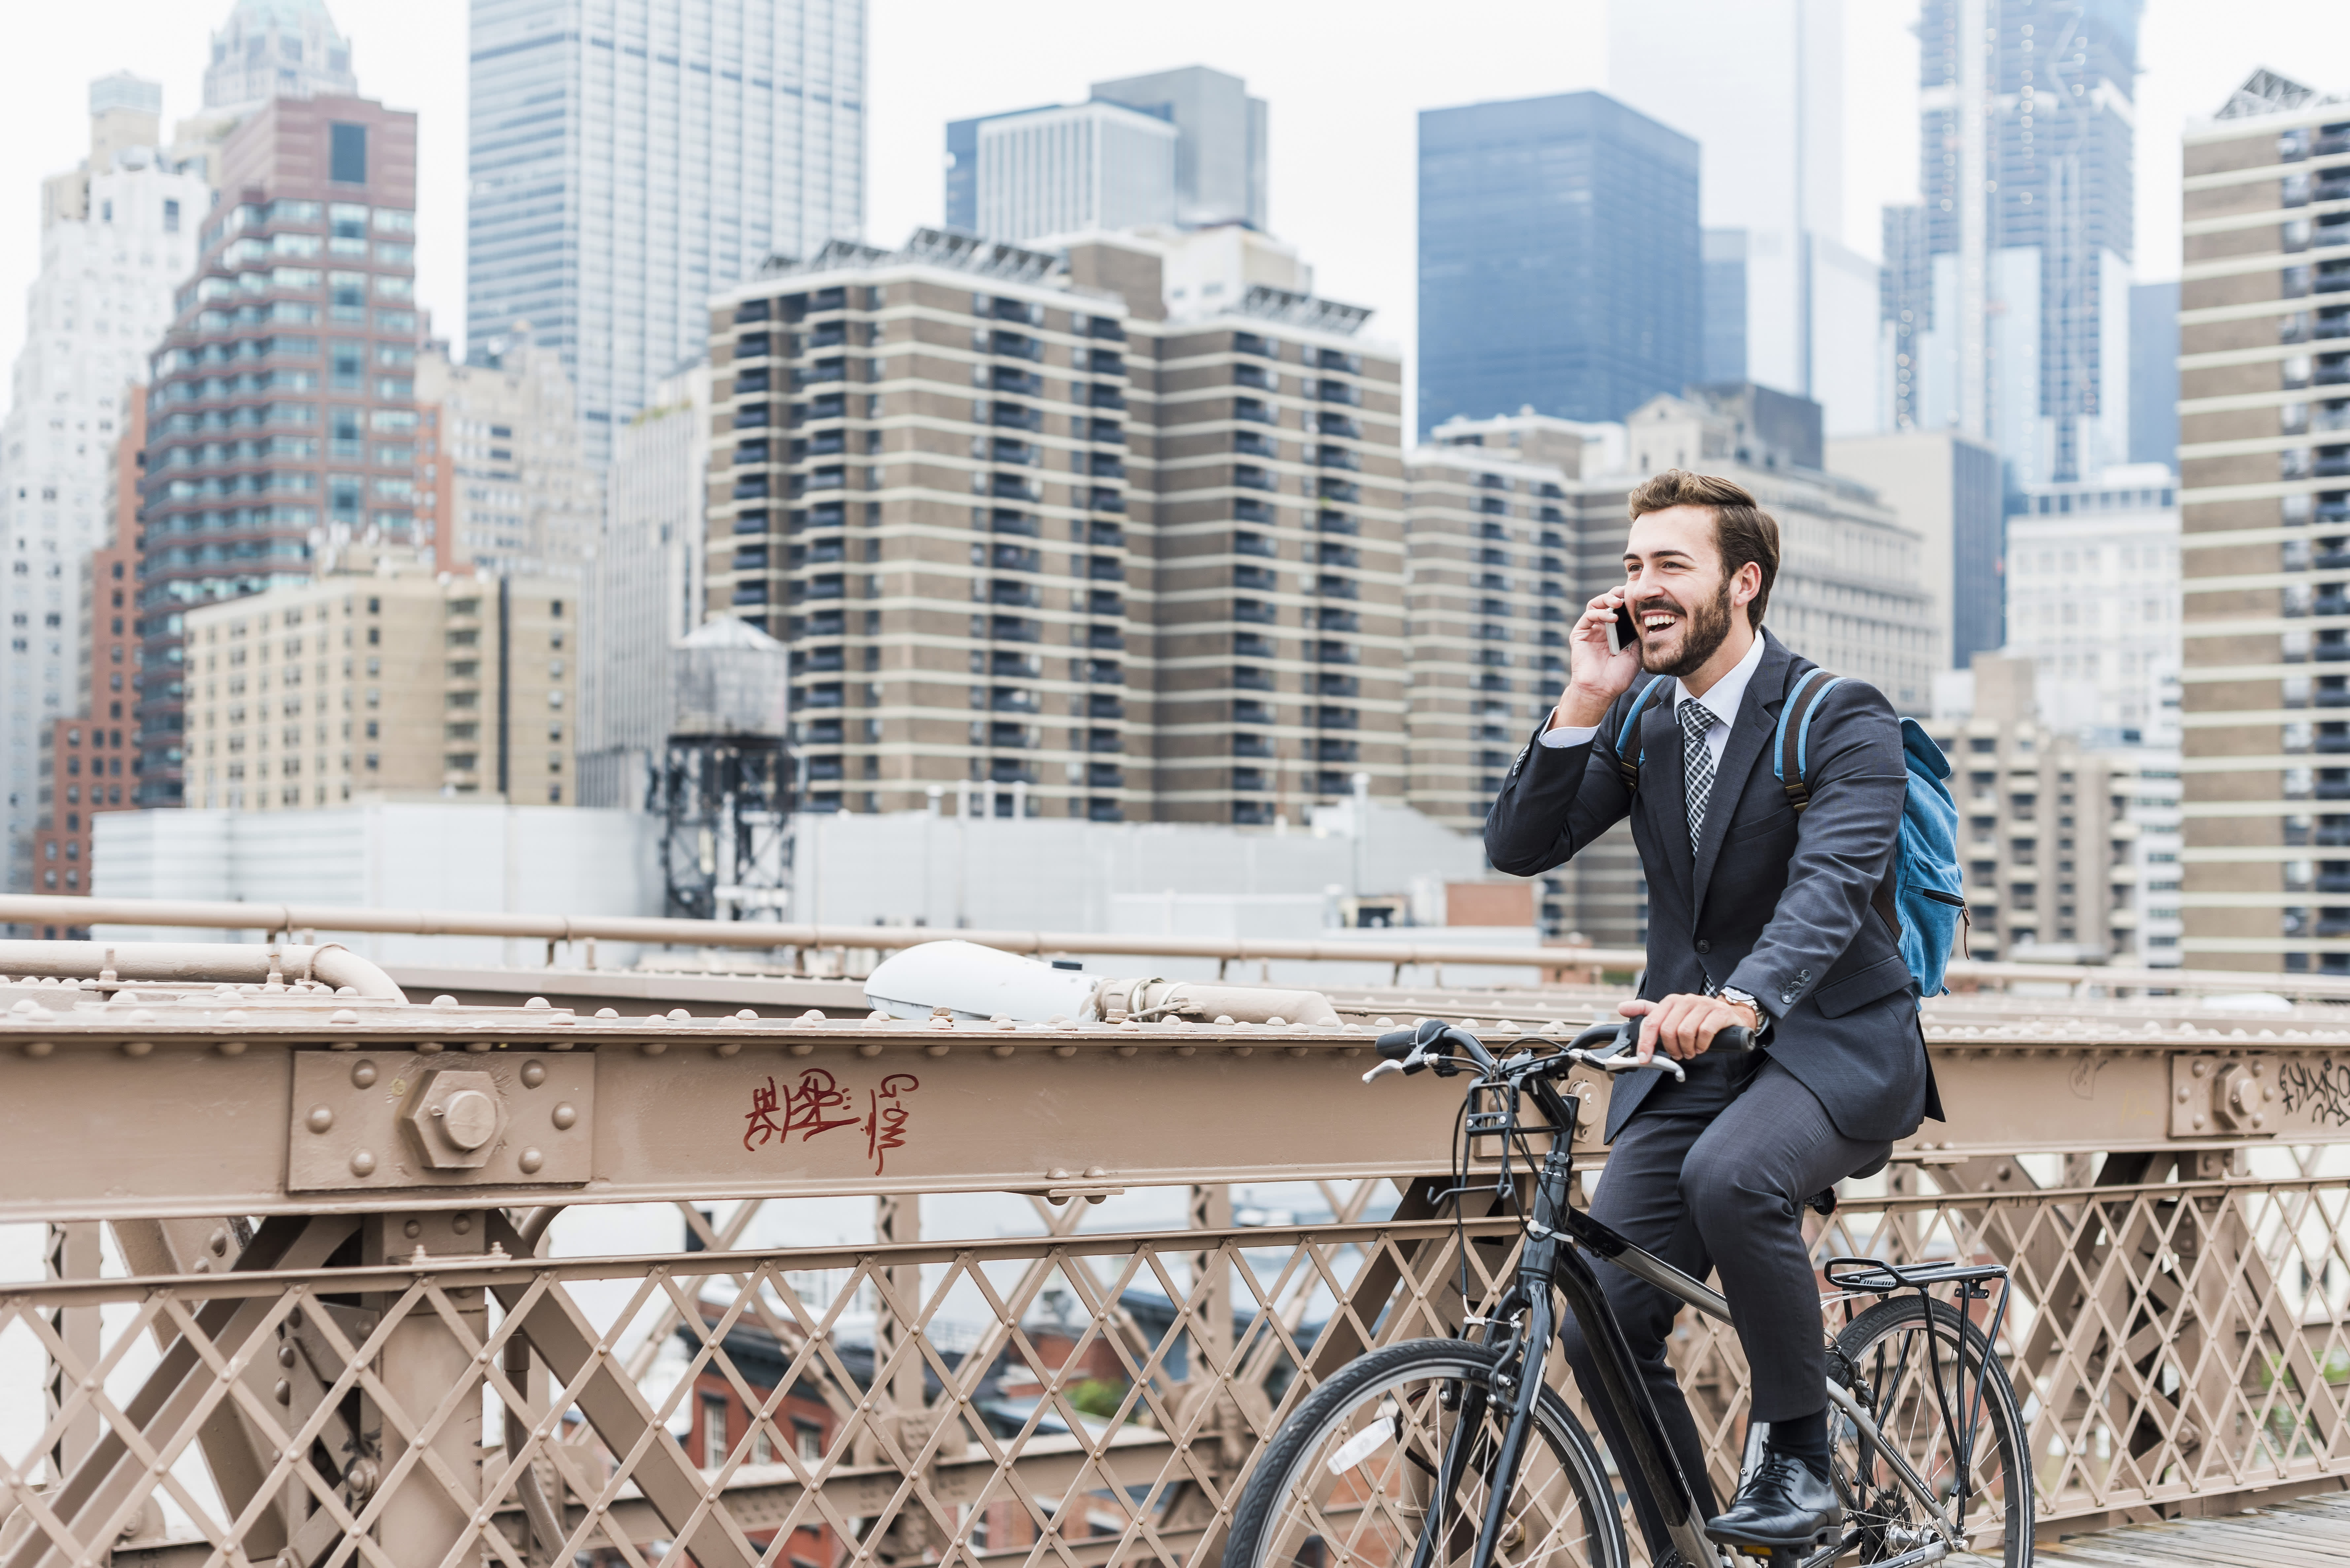 New York the top city globally for entrepreneurial talent, Adecco says